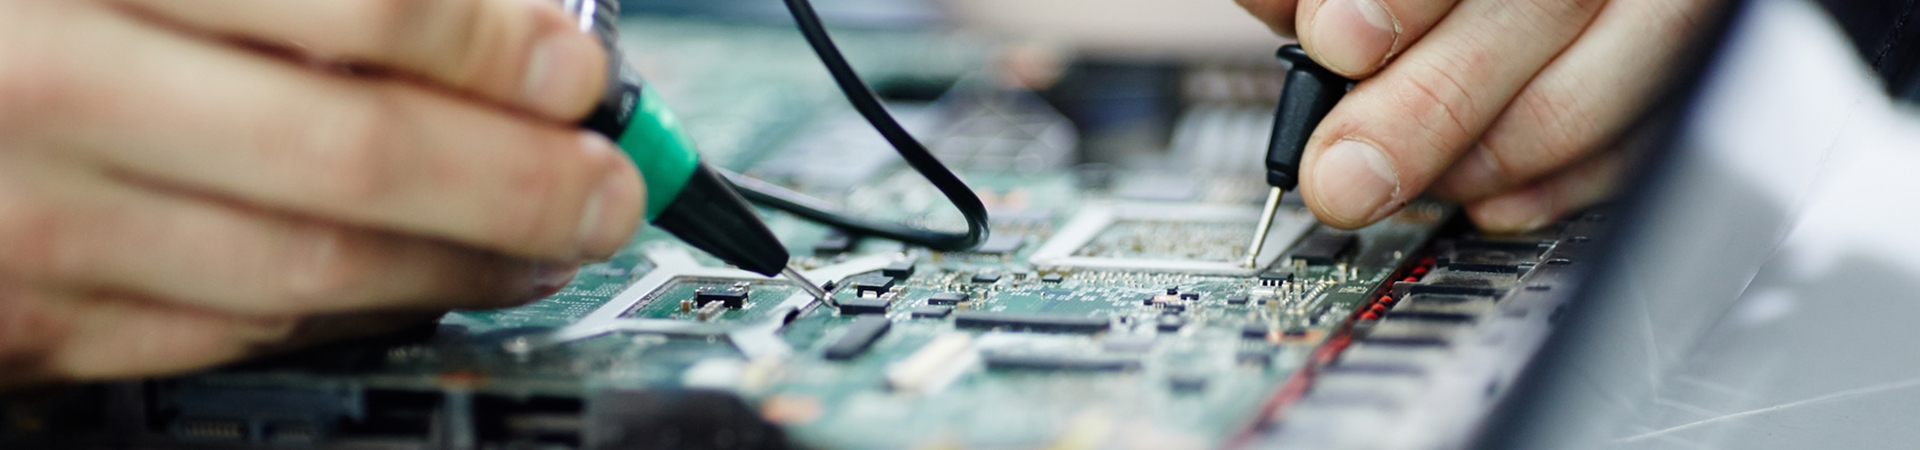 Testing Circuit Board with Multimeter